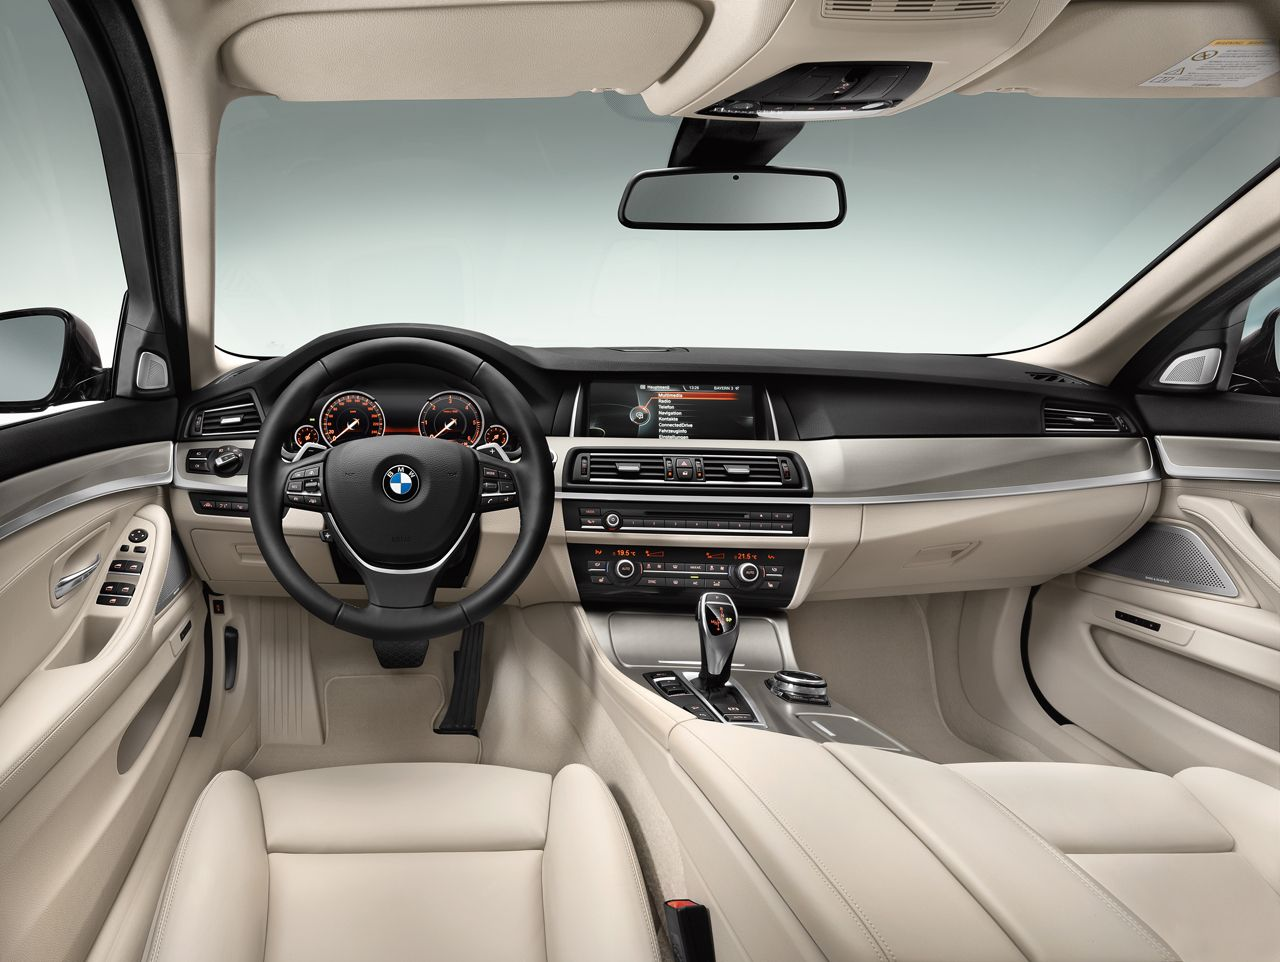 2014 Bmw 5 Series Touring Interior Love With Images Bmw 5